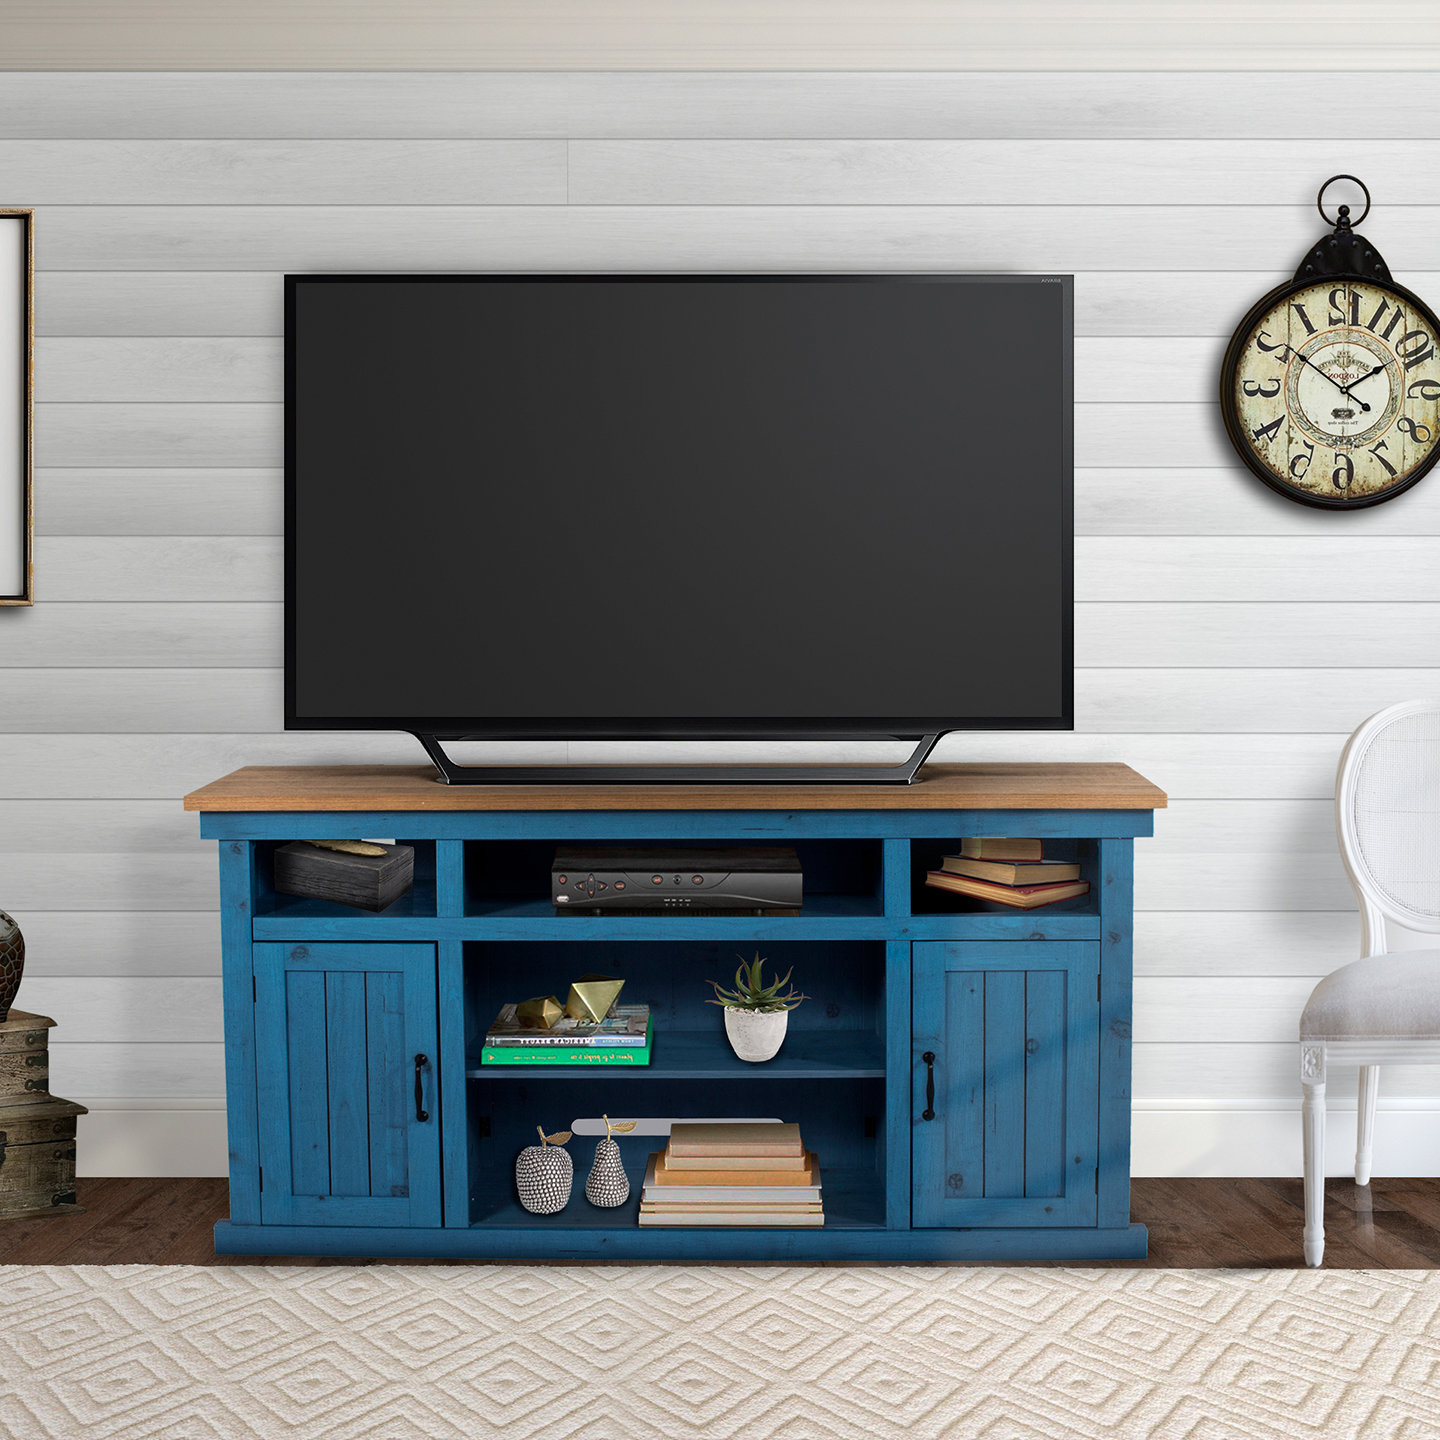 Blue Tv Stands You'll Love | Wayfair With Regard To Century Blue 60 Inch Tv Stands (View 12 of 20)